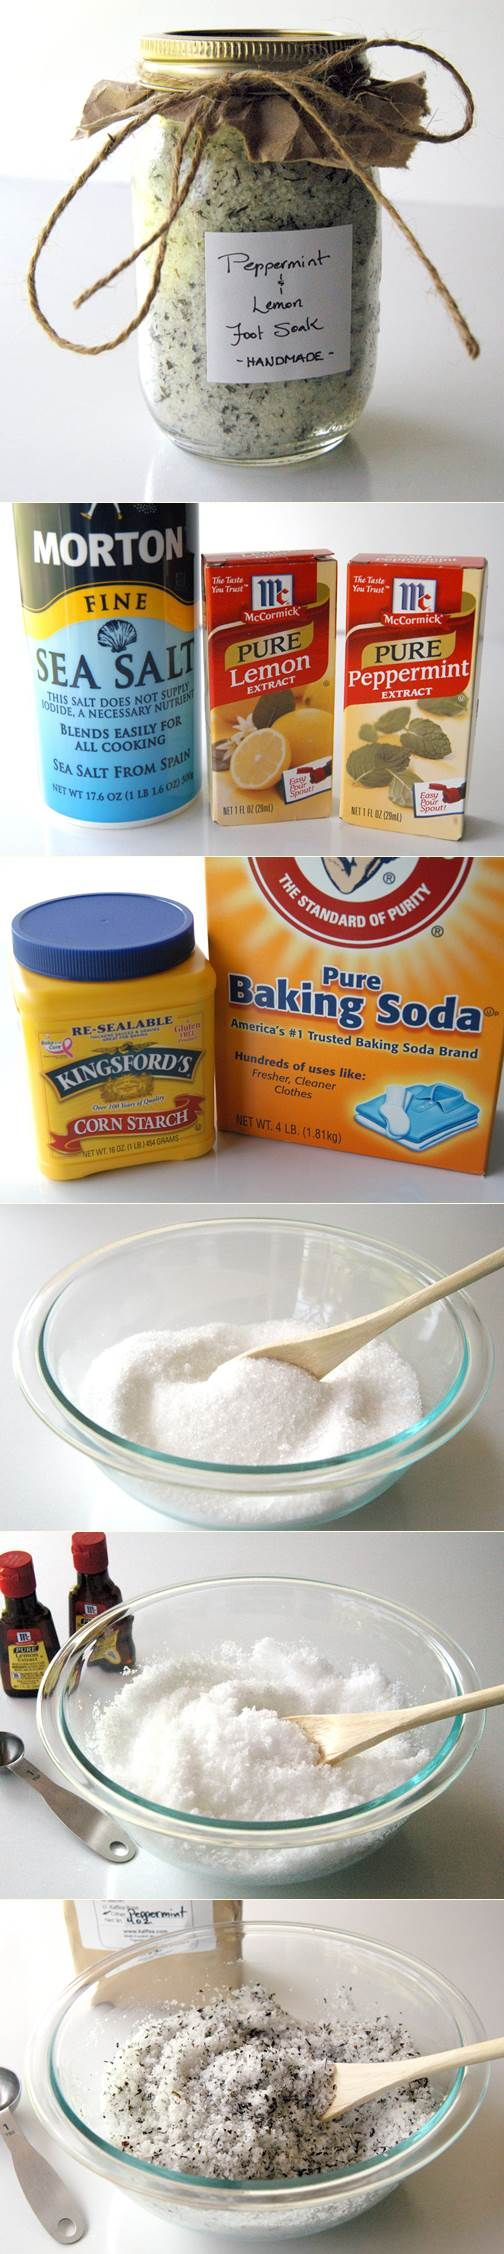 Handmade foot soak | DIY Stuff